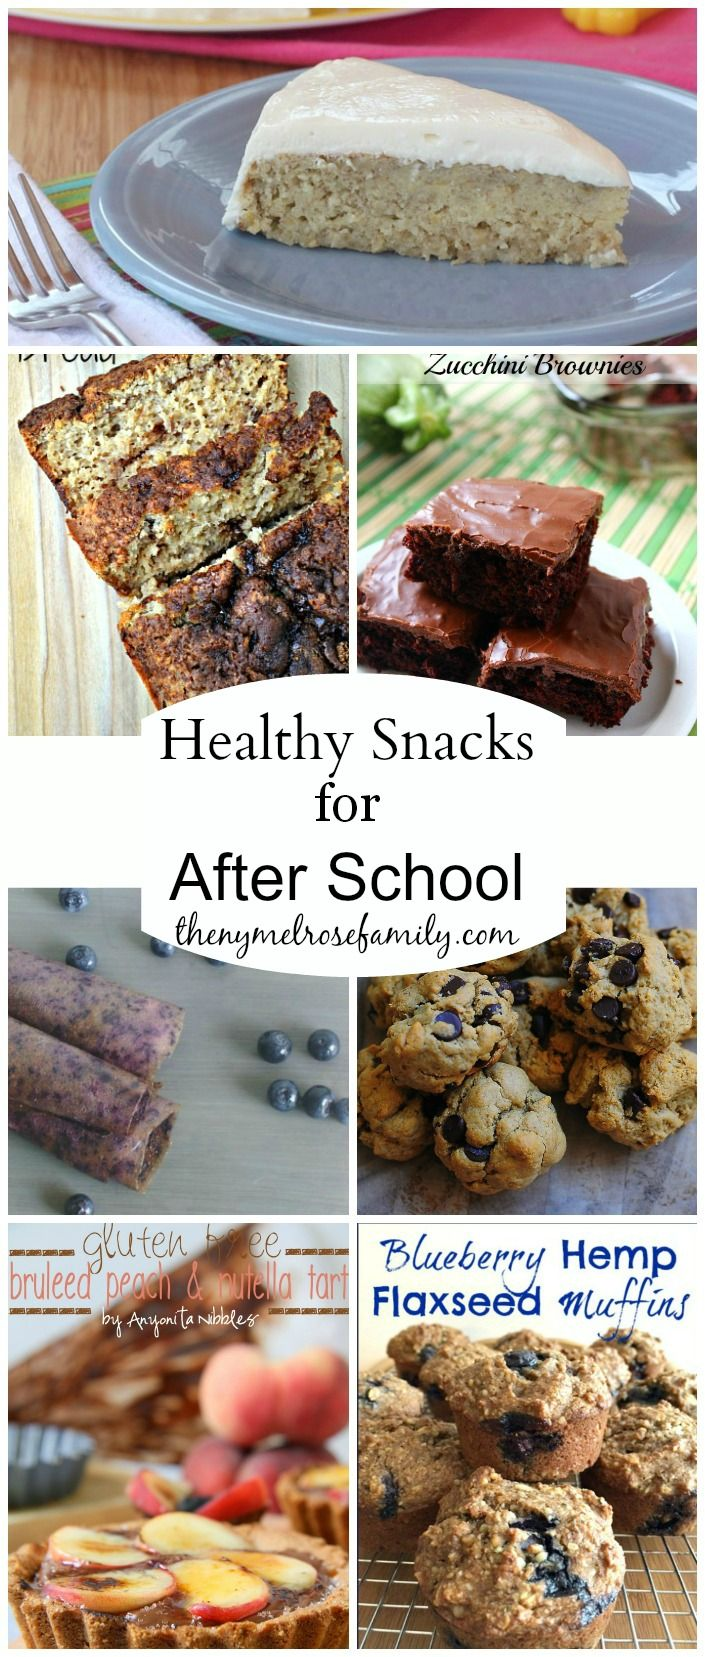 Healthy Snacks for After School www.thenymelrosefamily.com #healthy_snacks #gluten_free